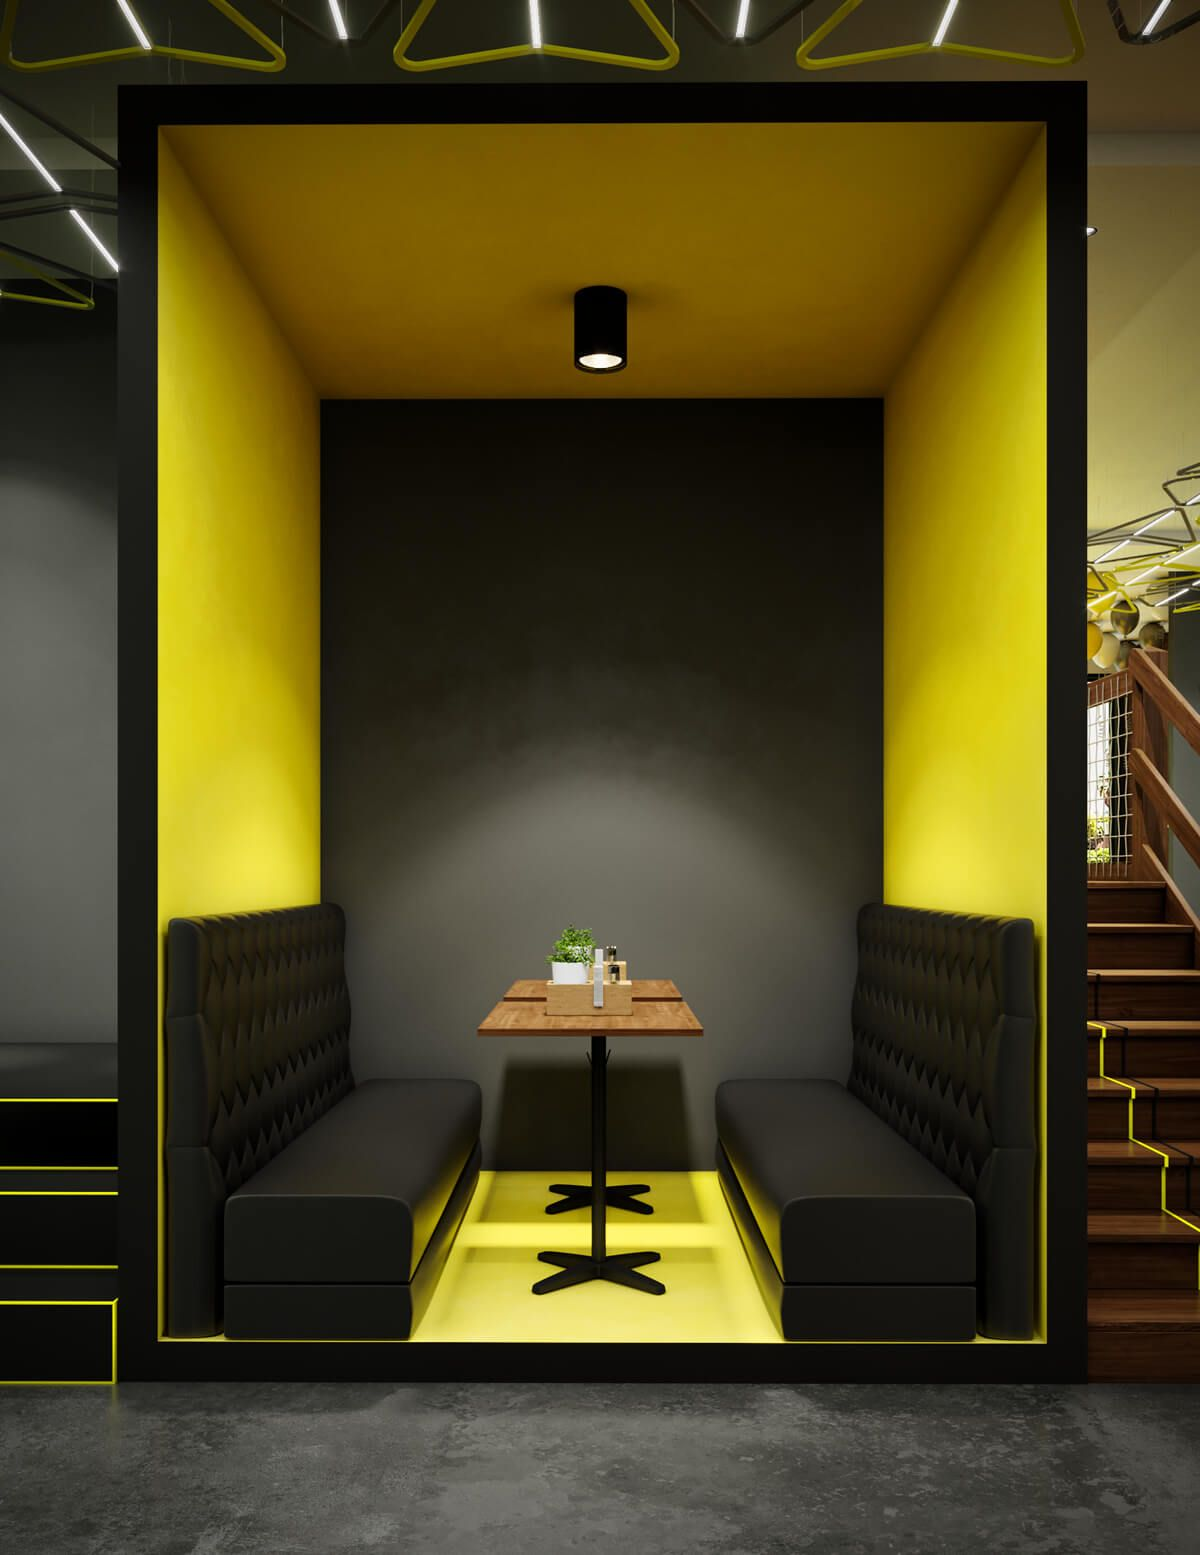 Creative use of materials with a funky color palette communicate